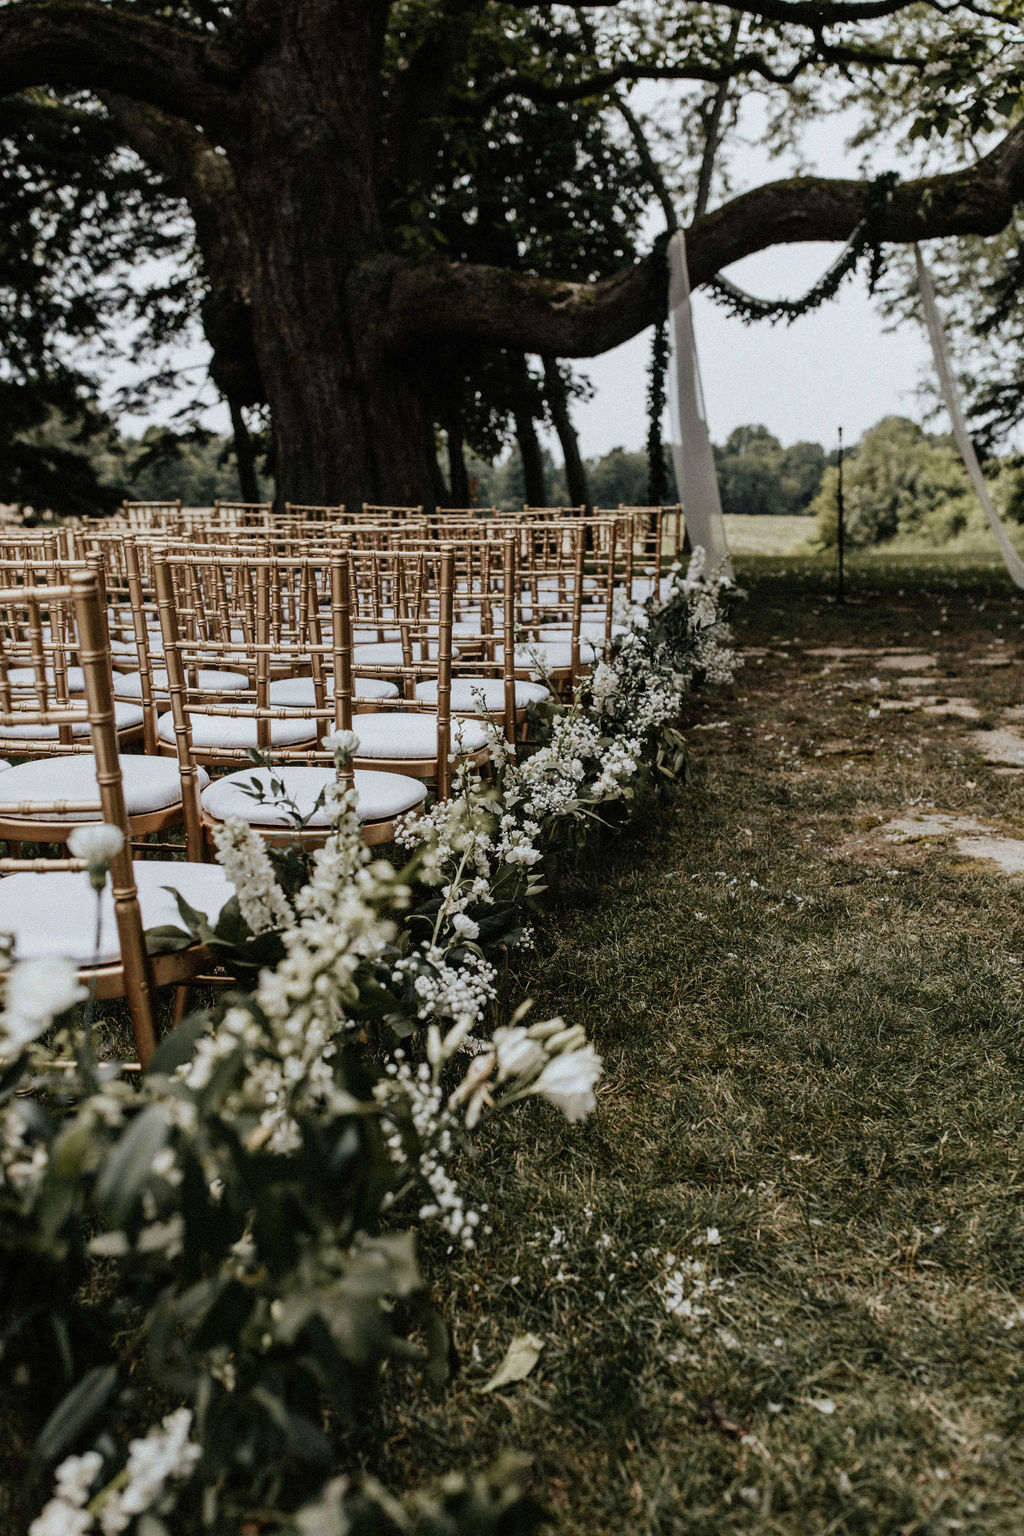 Flowers lining the edge of the aisle at an outdoor ceremony